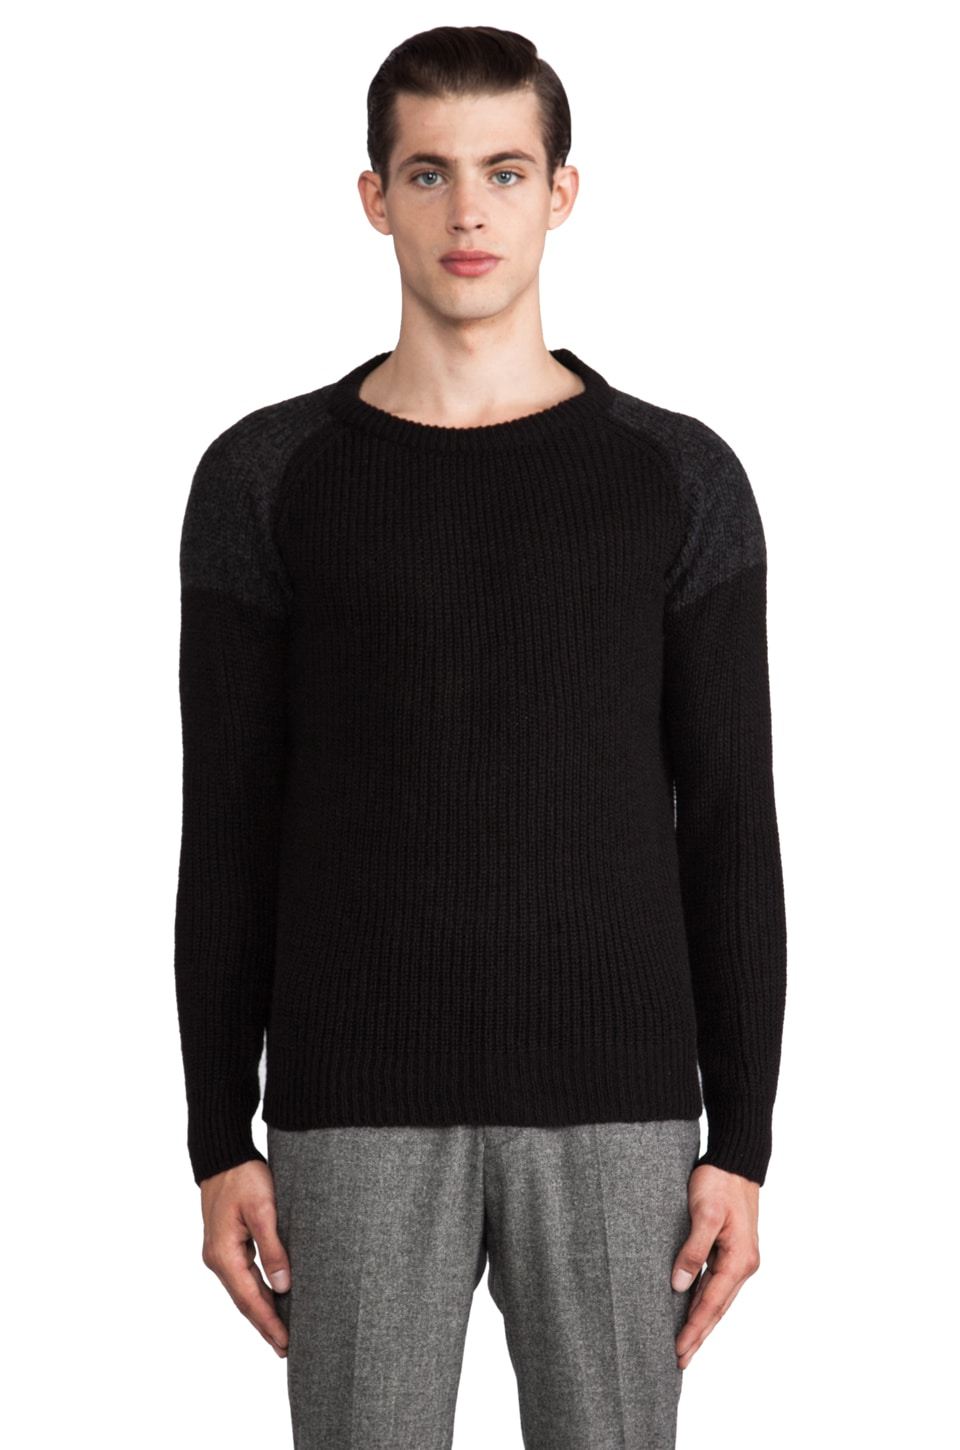 IRO King Sweater in Anthracite/Noir